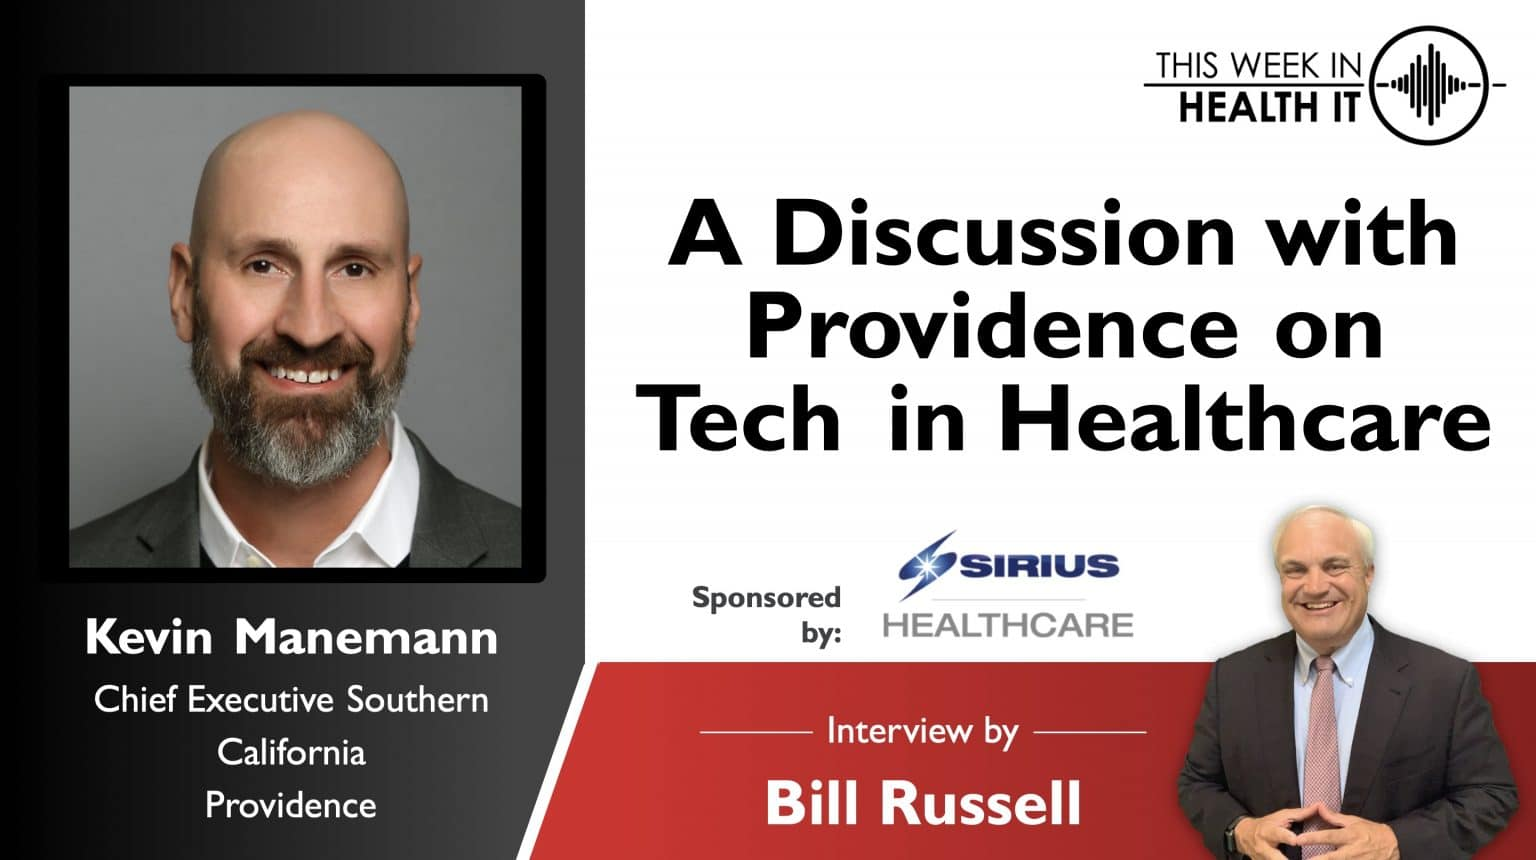 A Discussion with Kevin Manemann from Providence on Tech in Healthcare This Week in Health IT